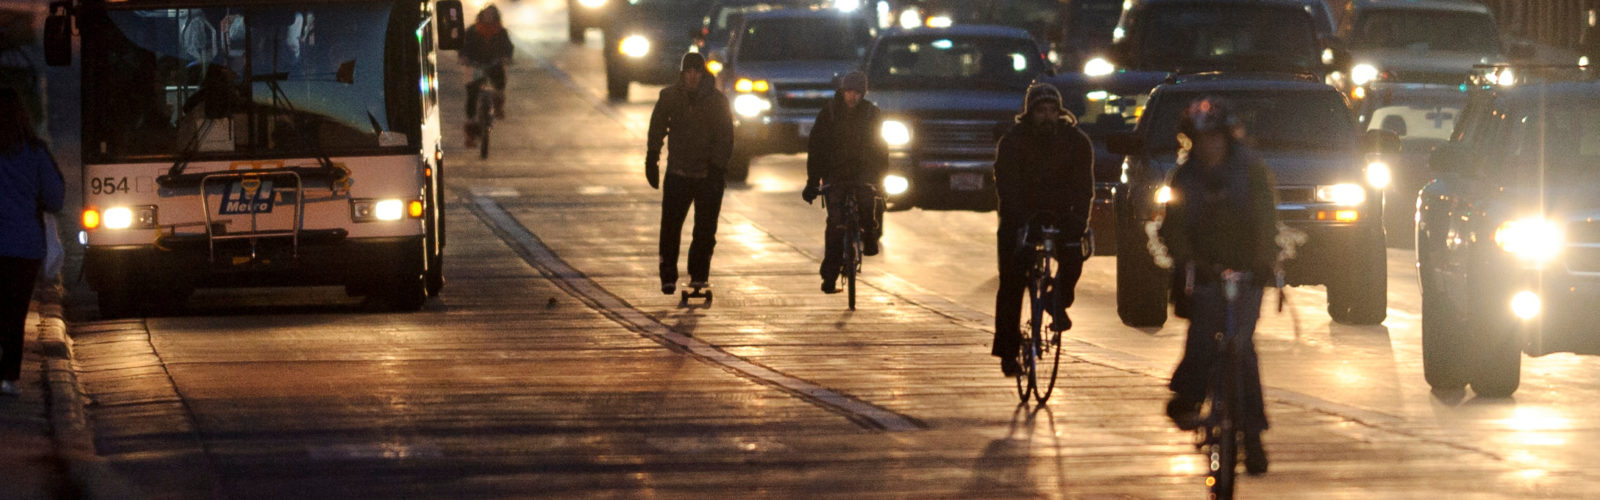 A skateboarder joins bicyclists pedaling in the bike lane along University Avenue against a backdrop of car lights and rush hour-traffic